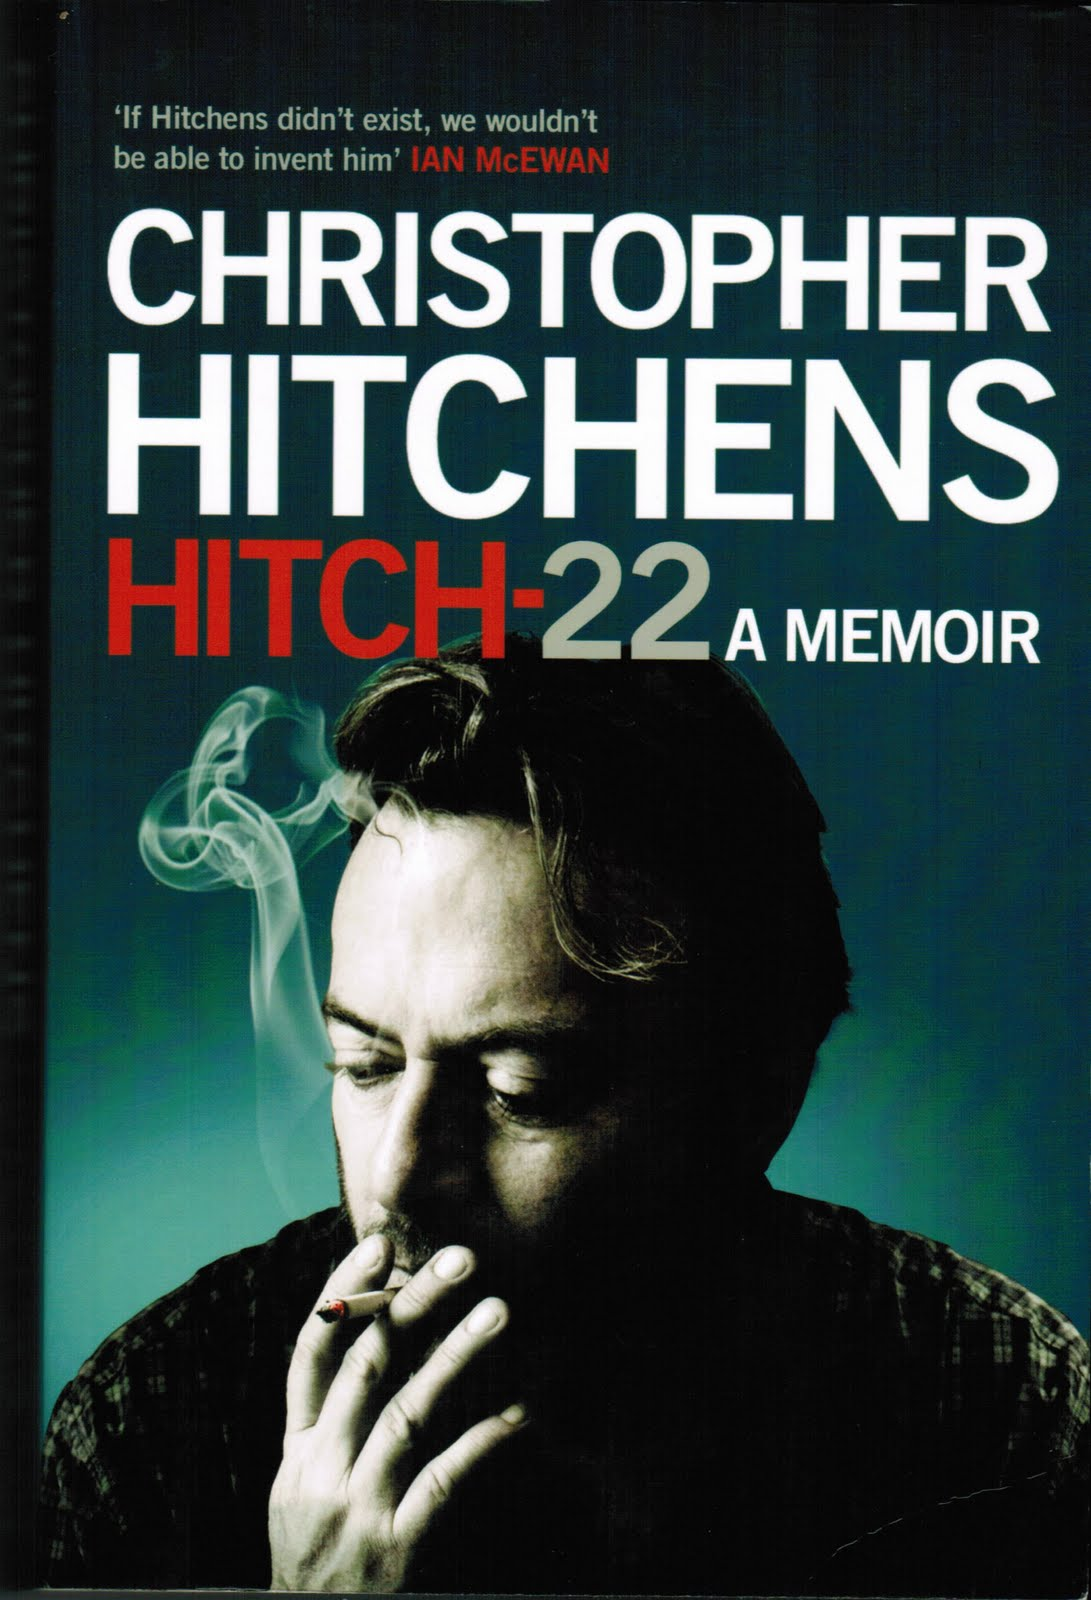 Christopher Hitchens Quotes - Page 12